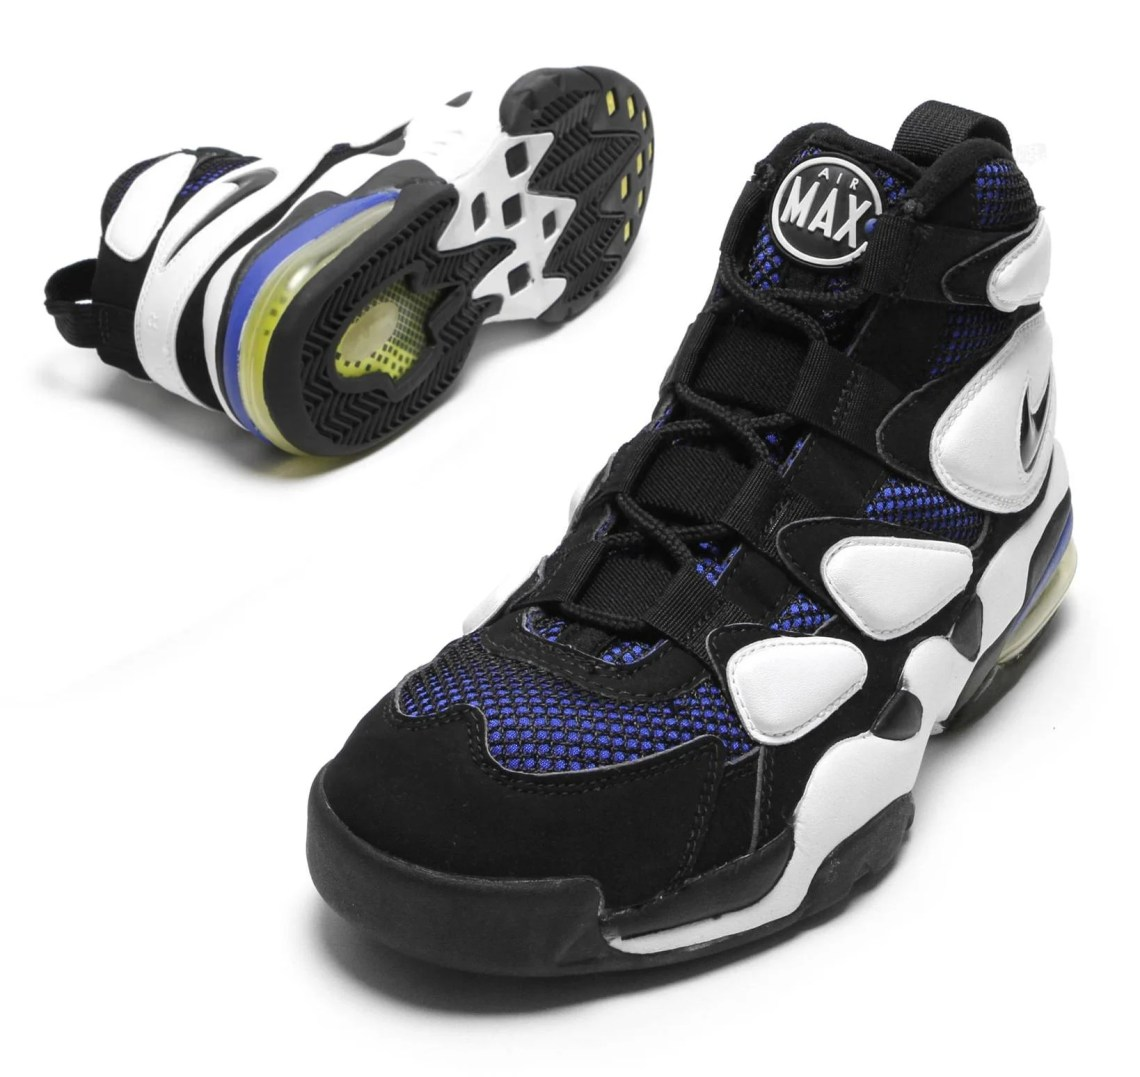 100% authentic 226a9 cdb2e ... a symbiotic relationship which forever fused sport and fashion  the 1995  Nike Air Max2 Uptempo, sneaker of choice of the Duke University Blue Devils.